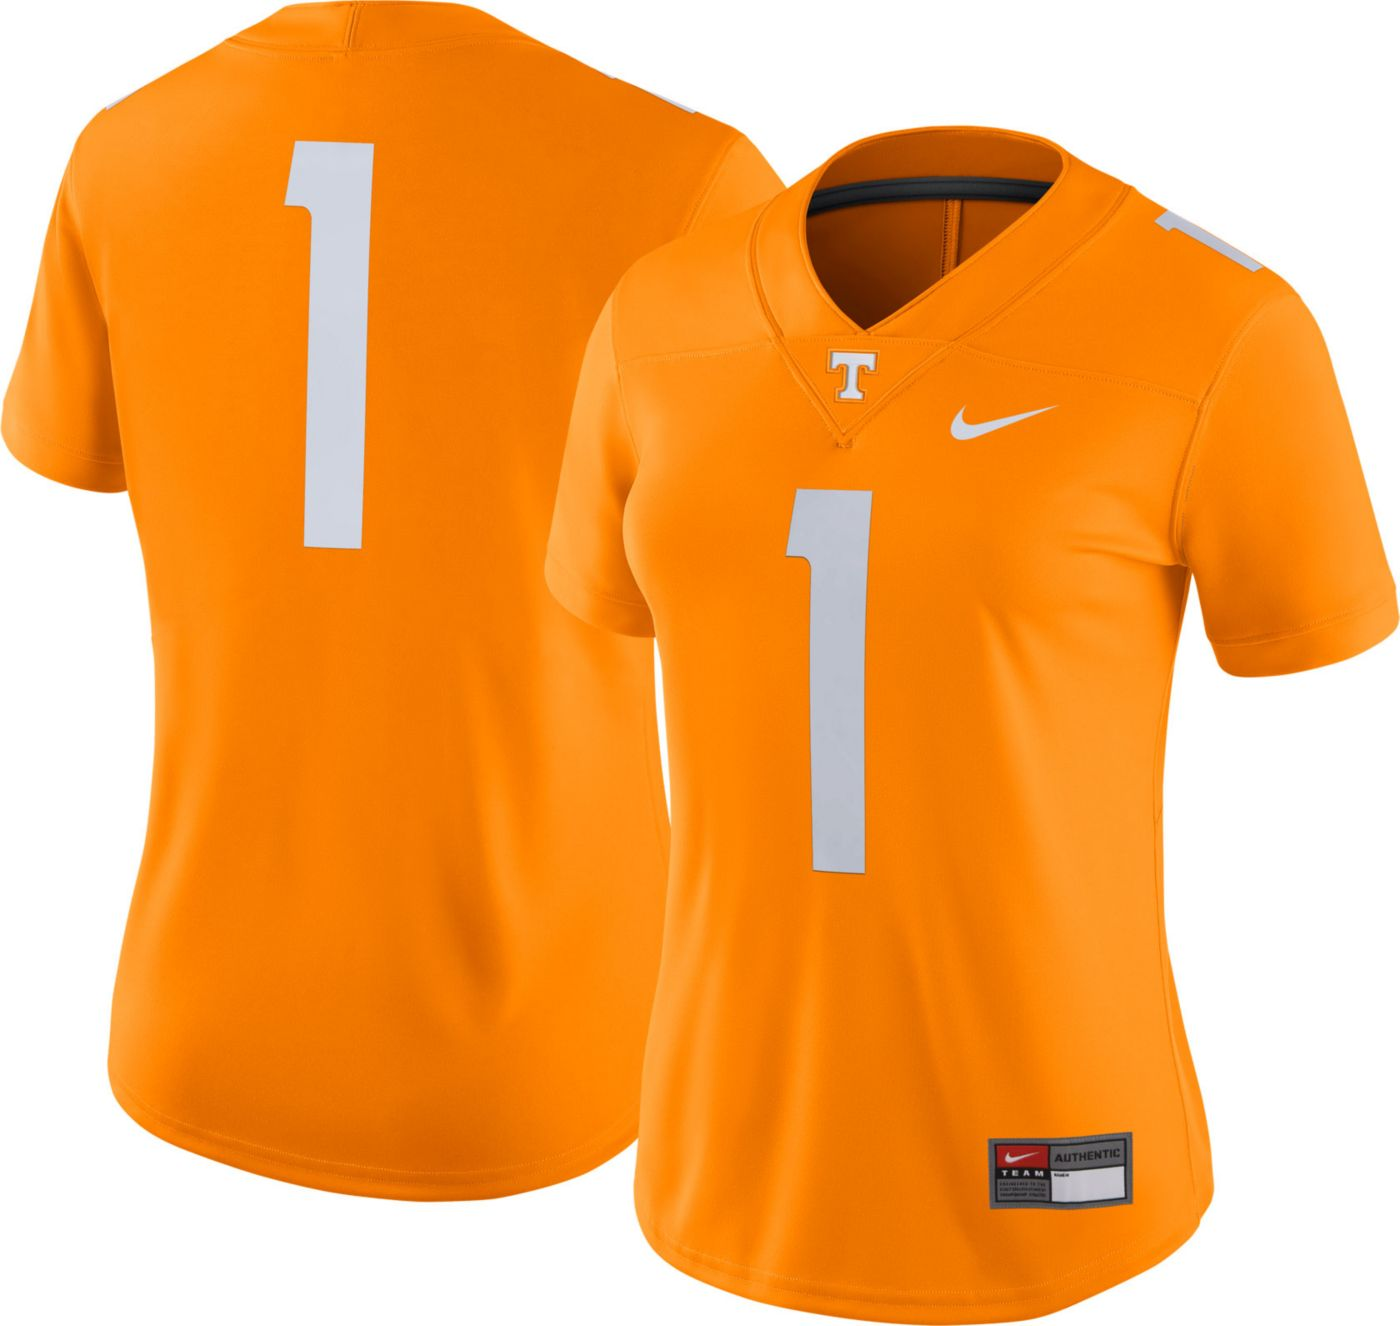 Nike Women's Tennessee Volunteers #1 Tennessee Orange Dri-FIT Game Football Jersey